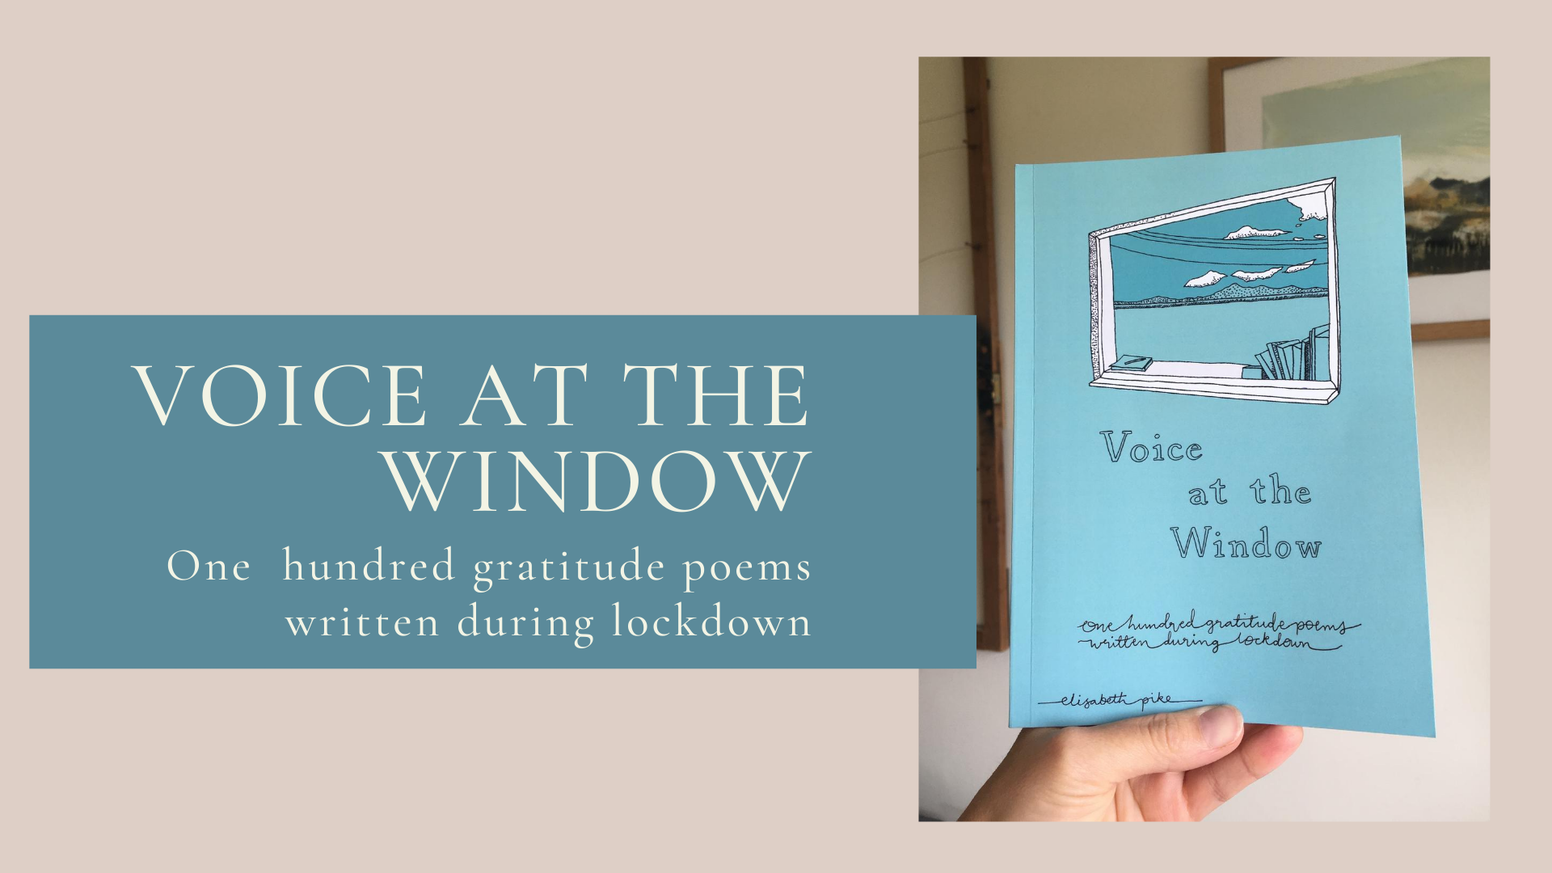 'Voice at the Window' is a published collection of 100 daily gratitude poems written during lockdown by Elisabeth Pike.